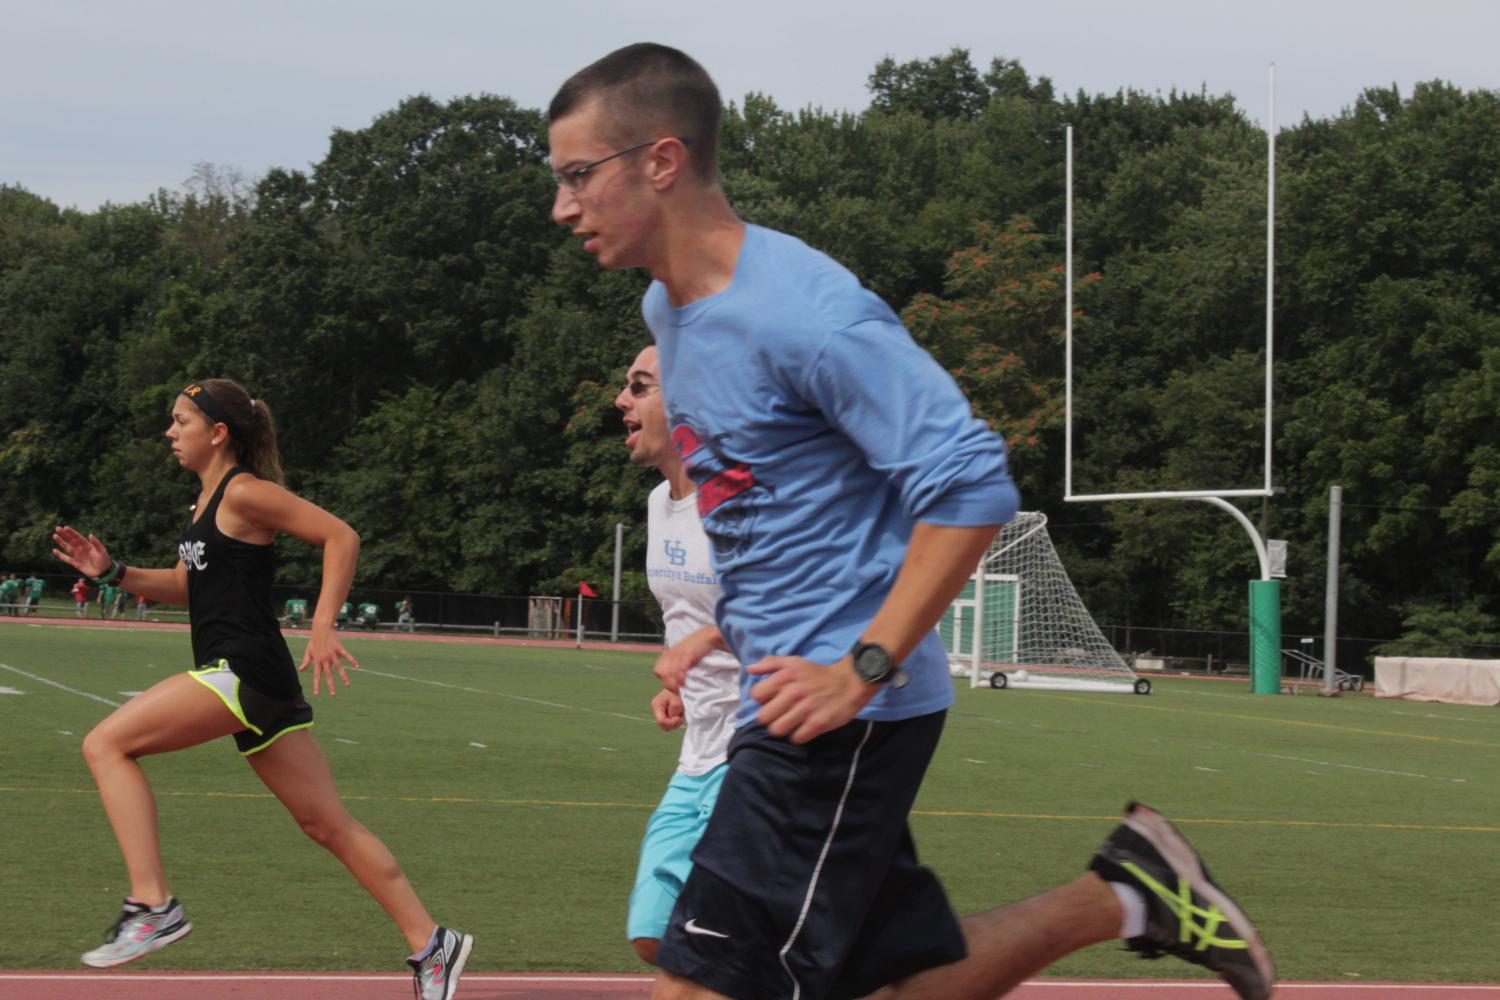 Sean Donohue runs at a recent practice. PV cross country opened their season on Saturday at Darlington County Park.